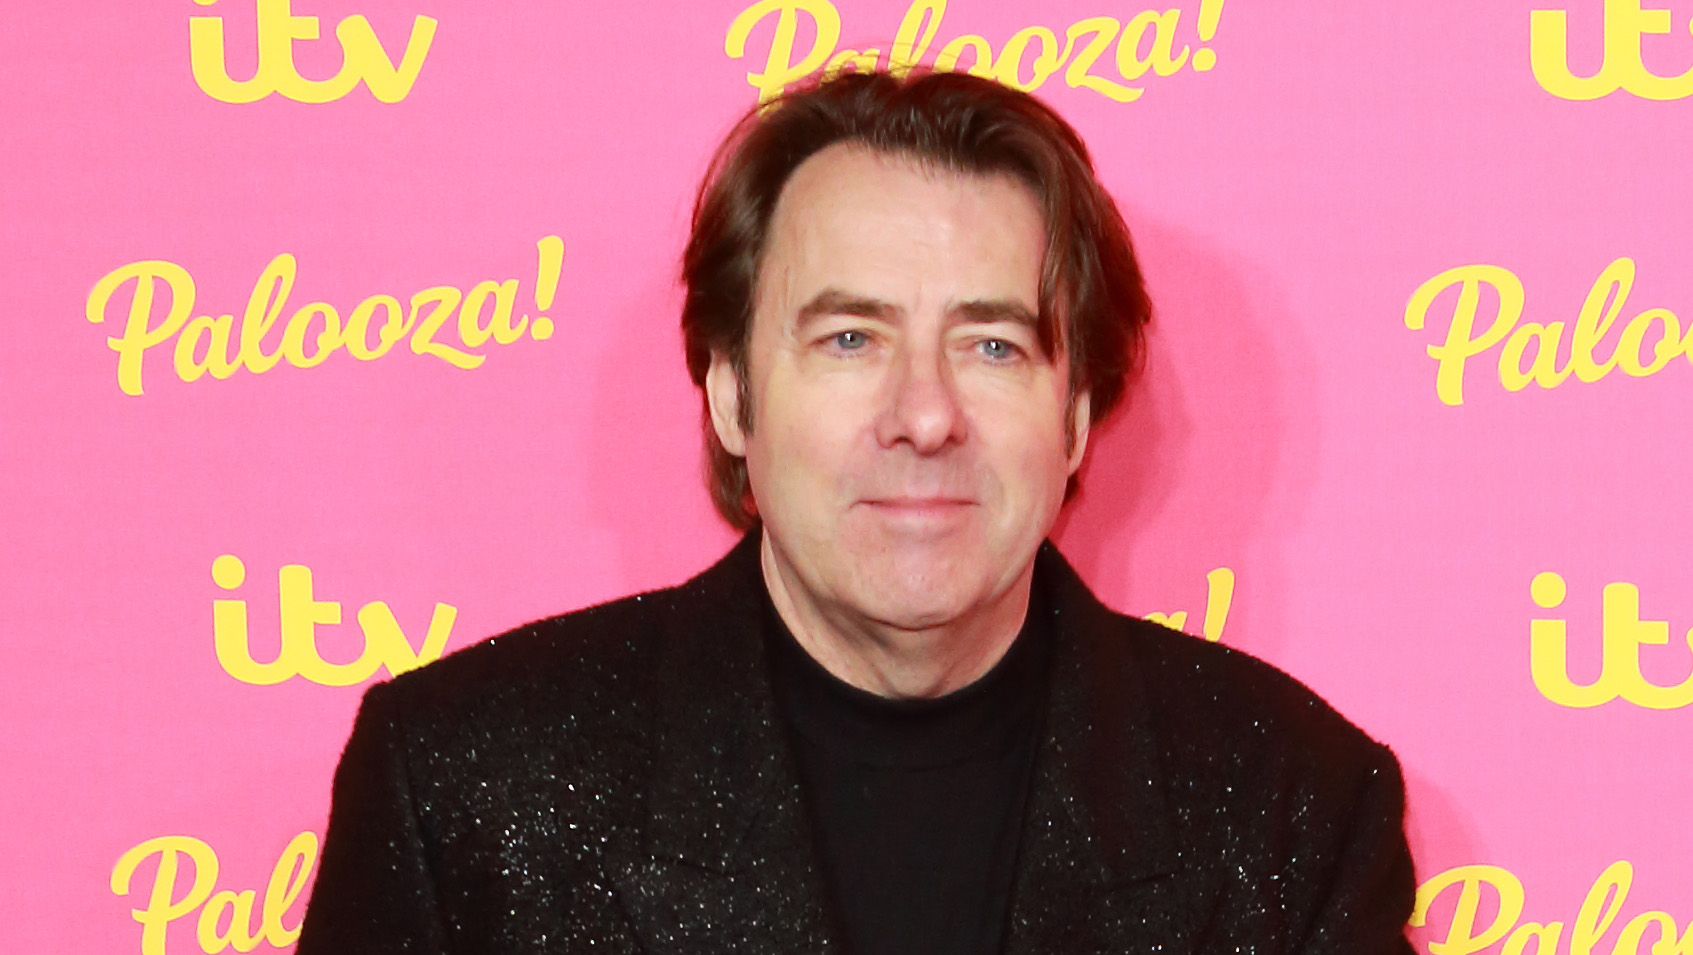 Jonathan Ross' daughter Honey opens up about dating as a plus-sized woman